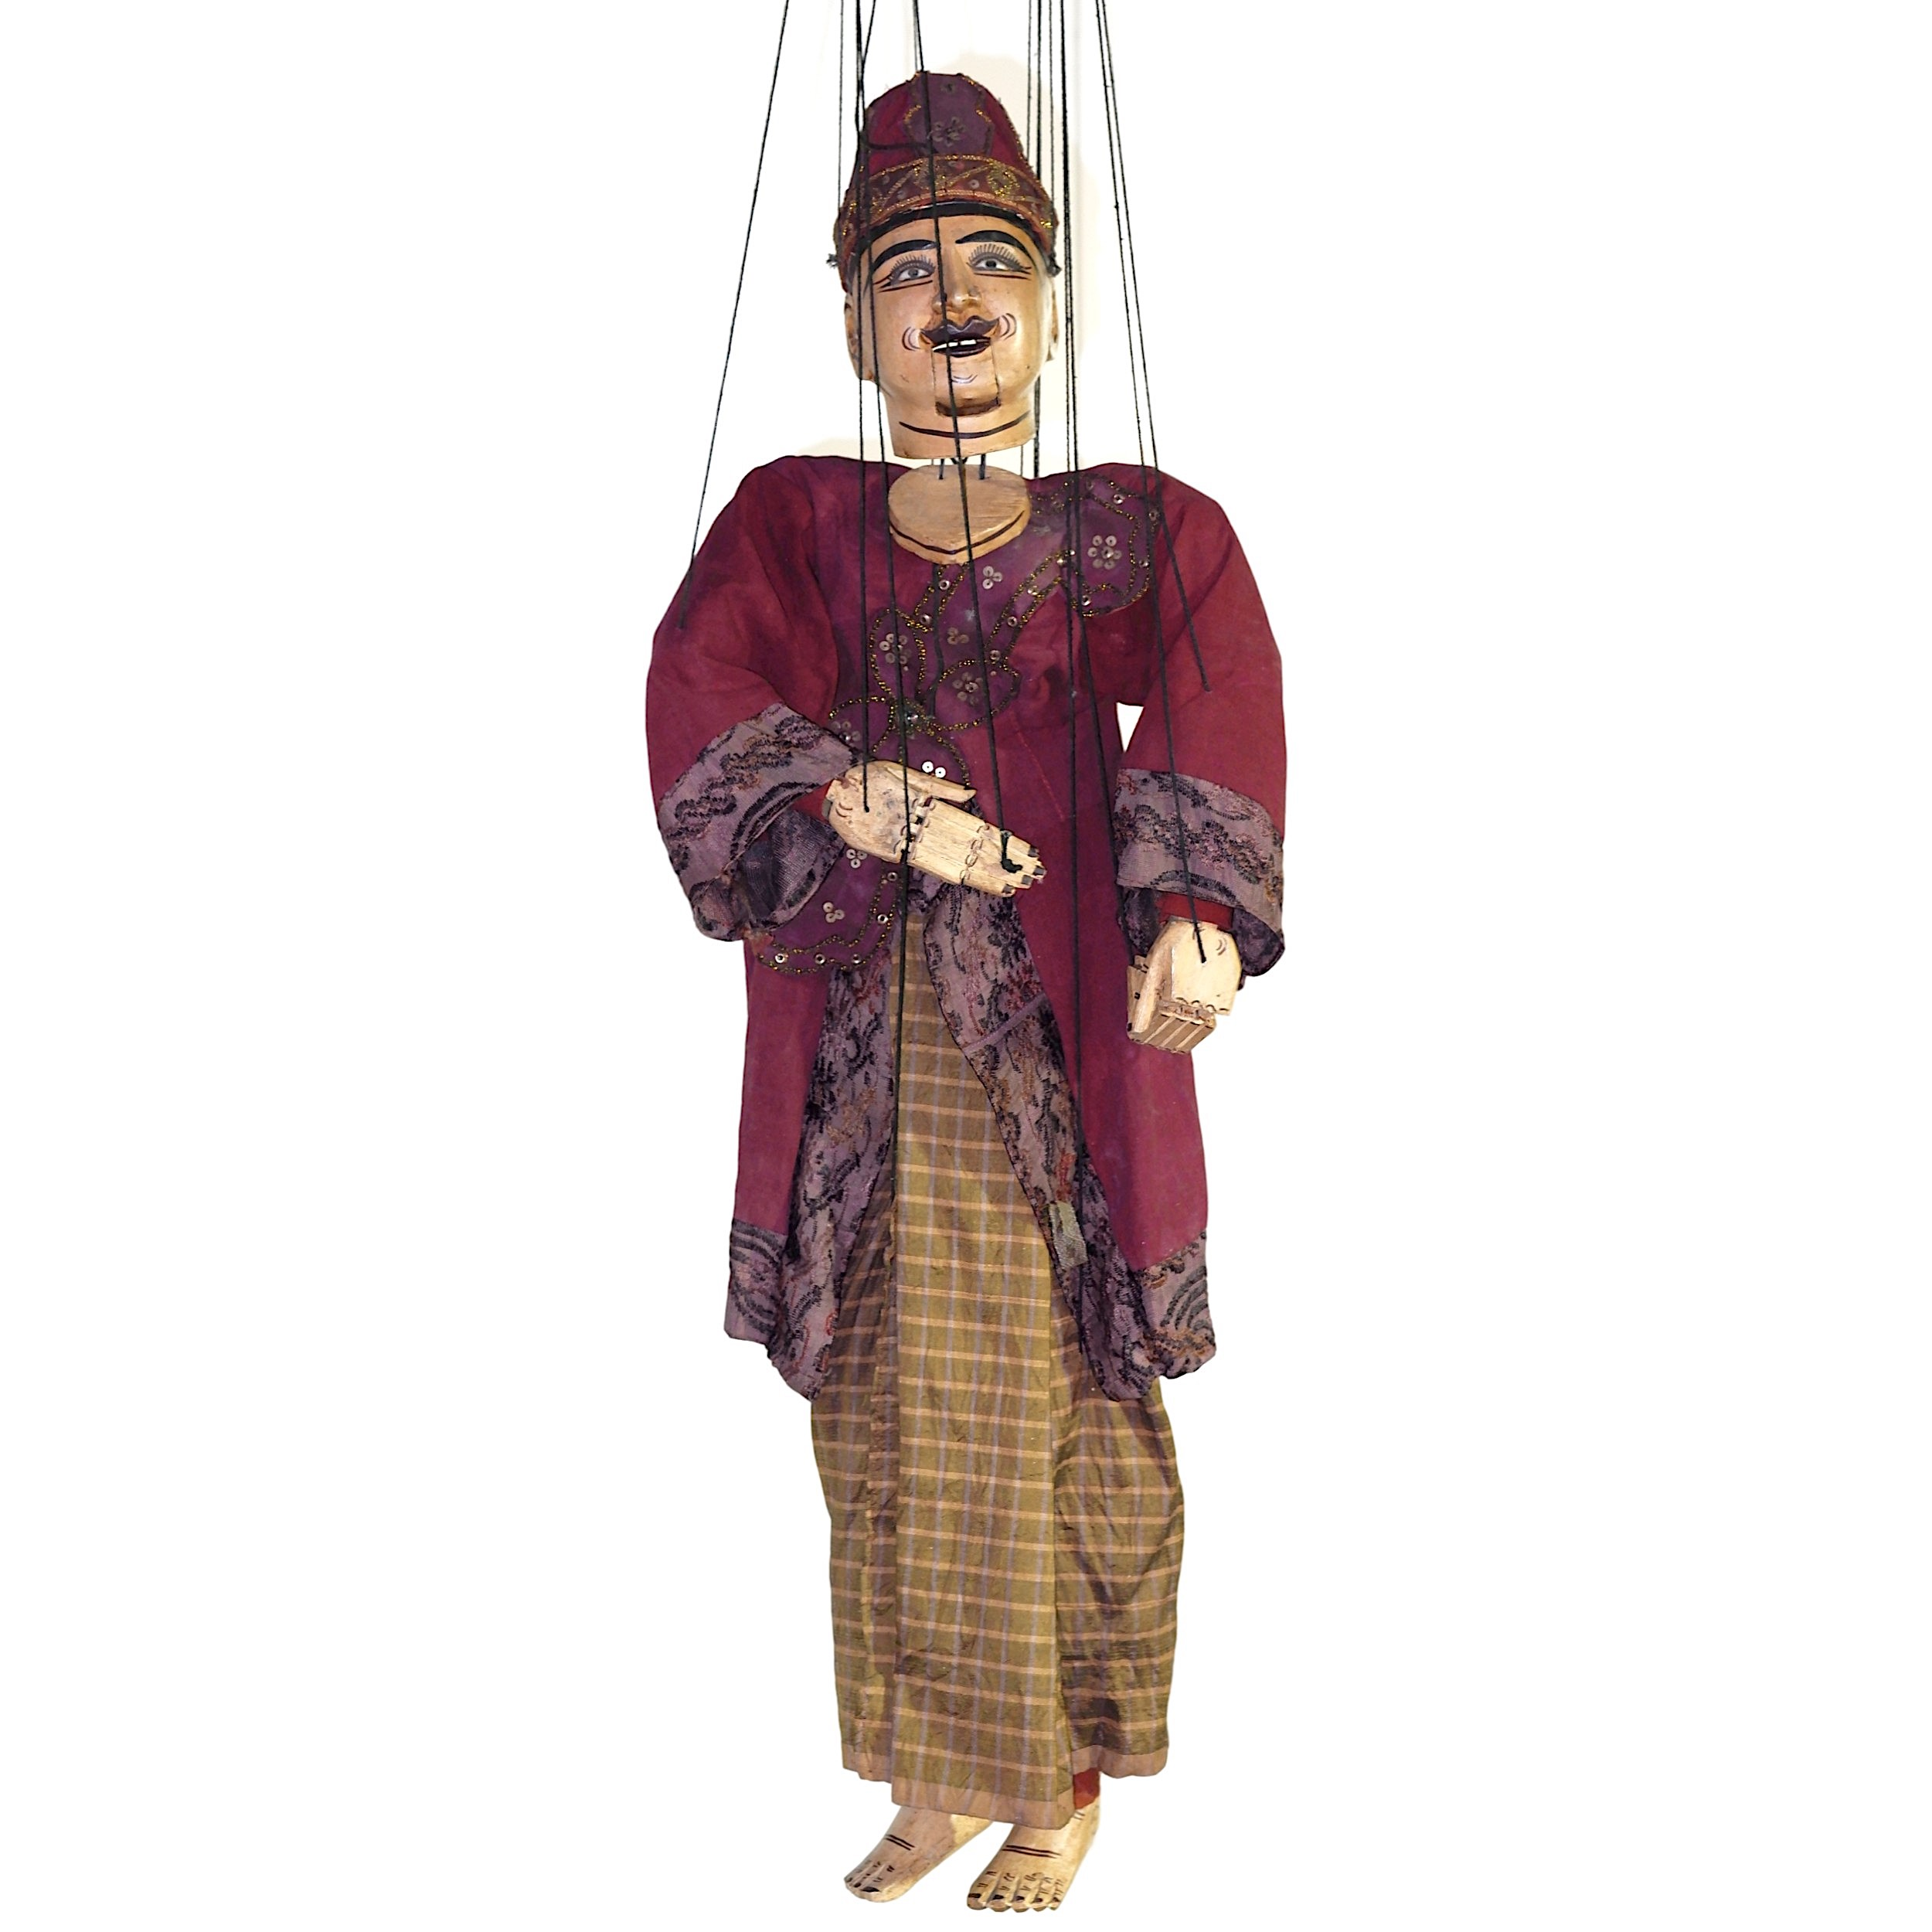 'Old Burmese Marionette Puppet with Display Stand'